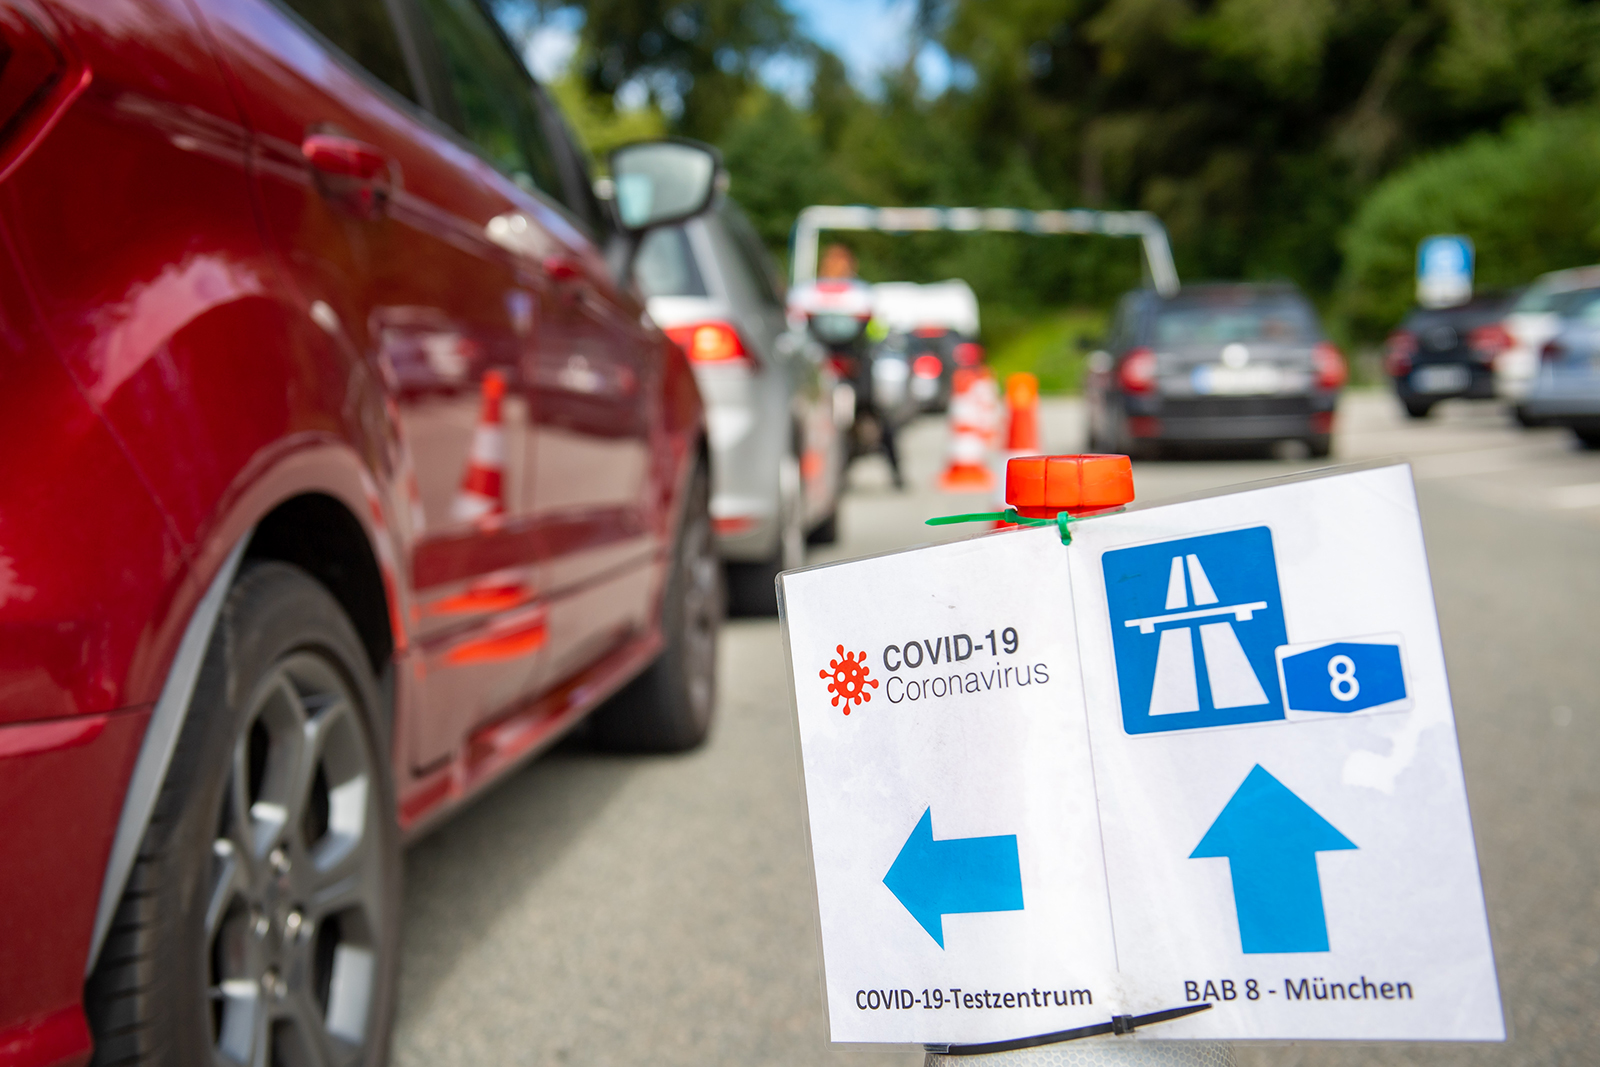 A testing center sign is pictured for vacation returnees at a rest stop on the A8 highway near Traunstein, Germany, on August 20.